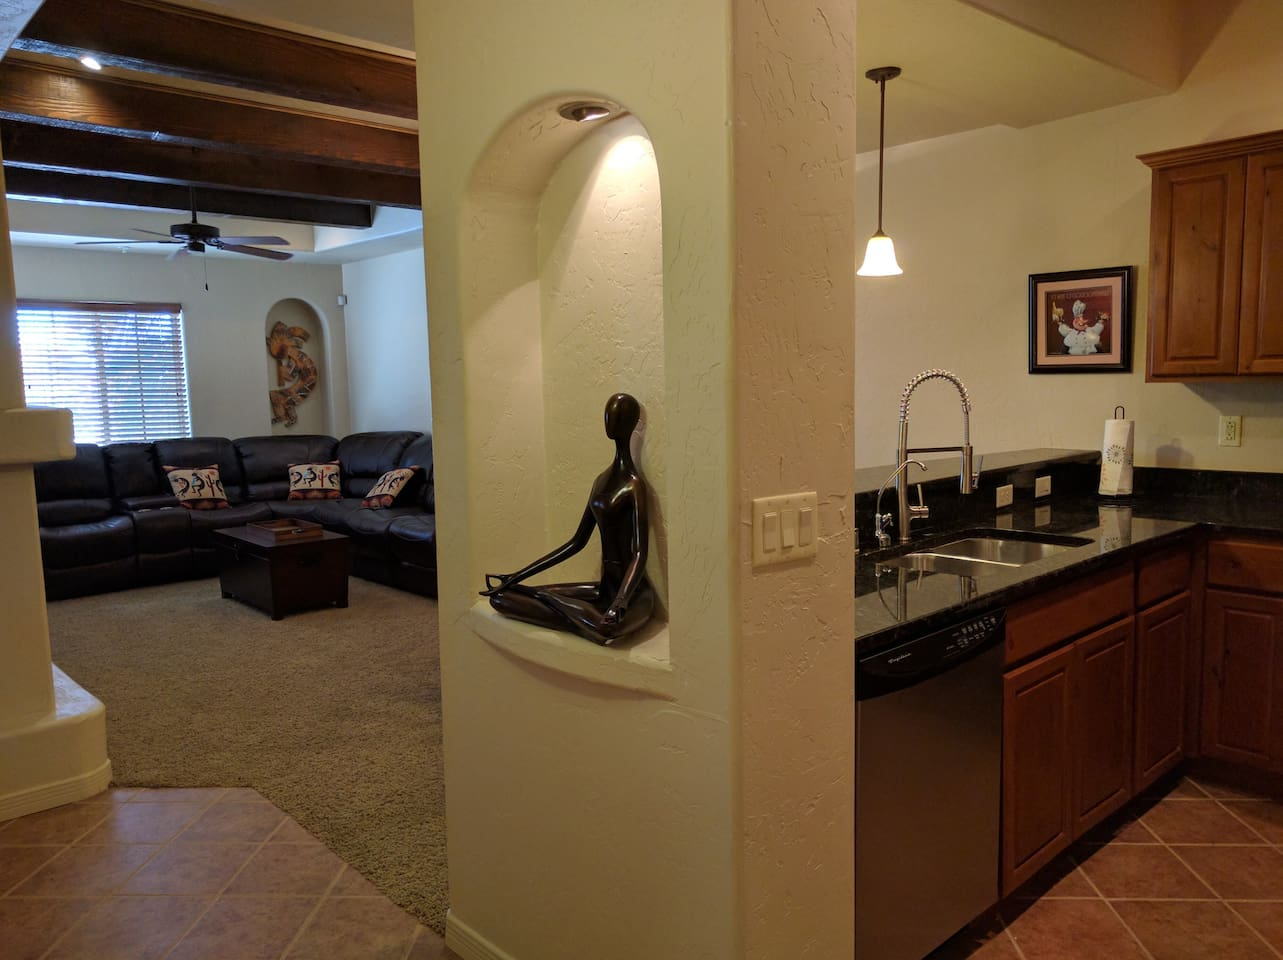 Our condo is located by two restaurants/wineries and a coffee café within walking distance. A few blocks down the road is Mesilla town square where Billy the Kid was once imprisoned and which now features several wonderful restaurants and shops.